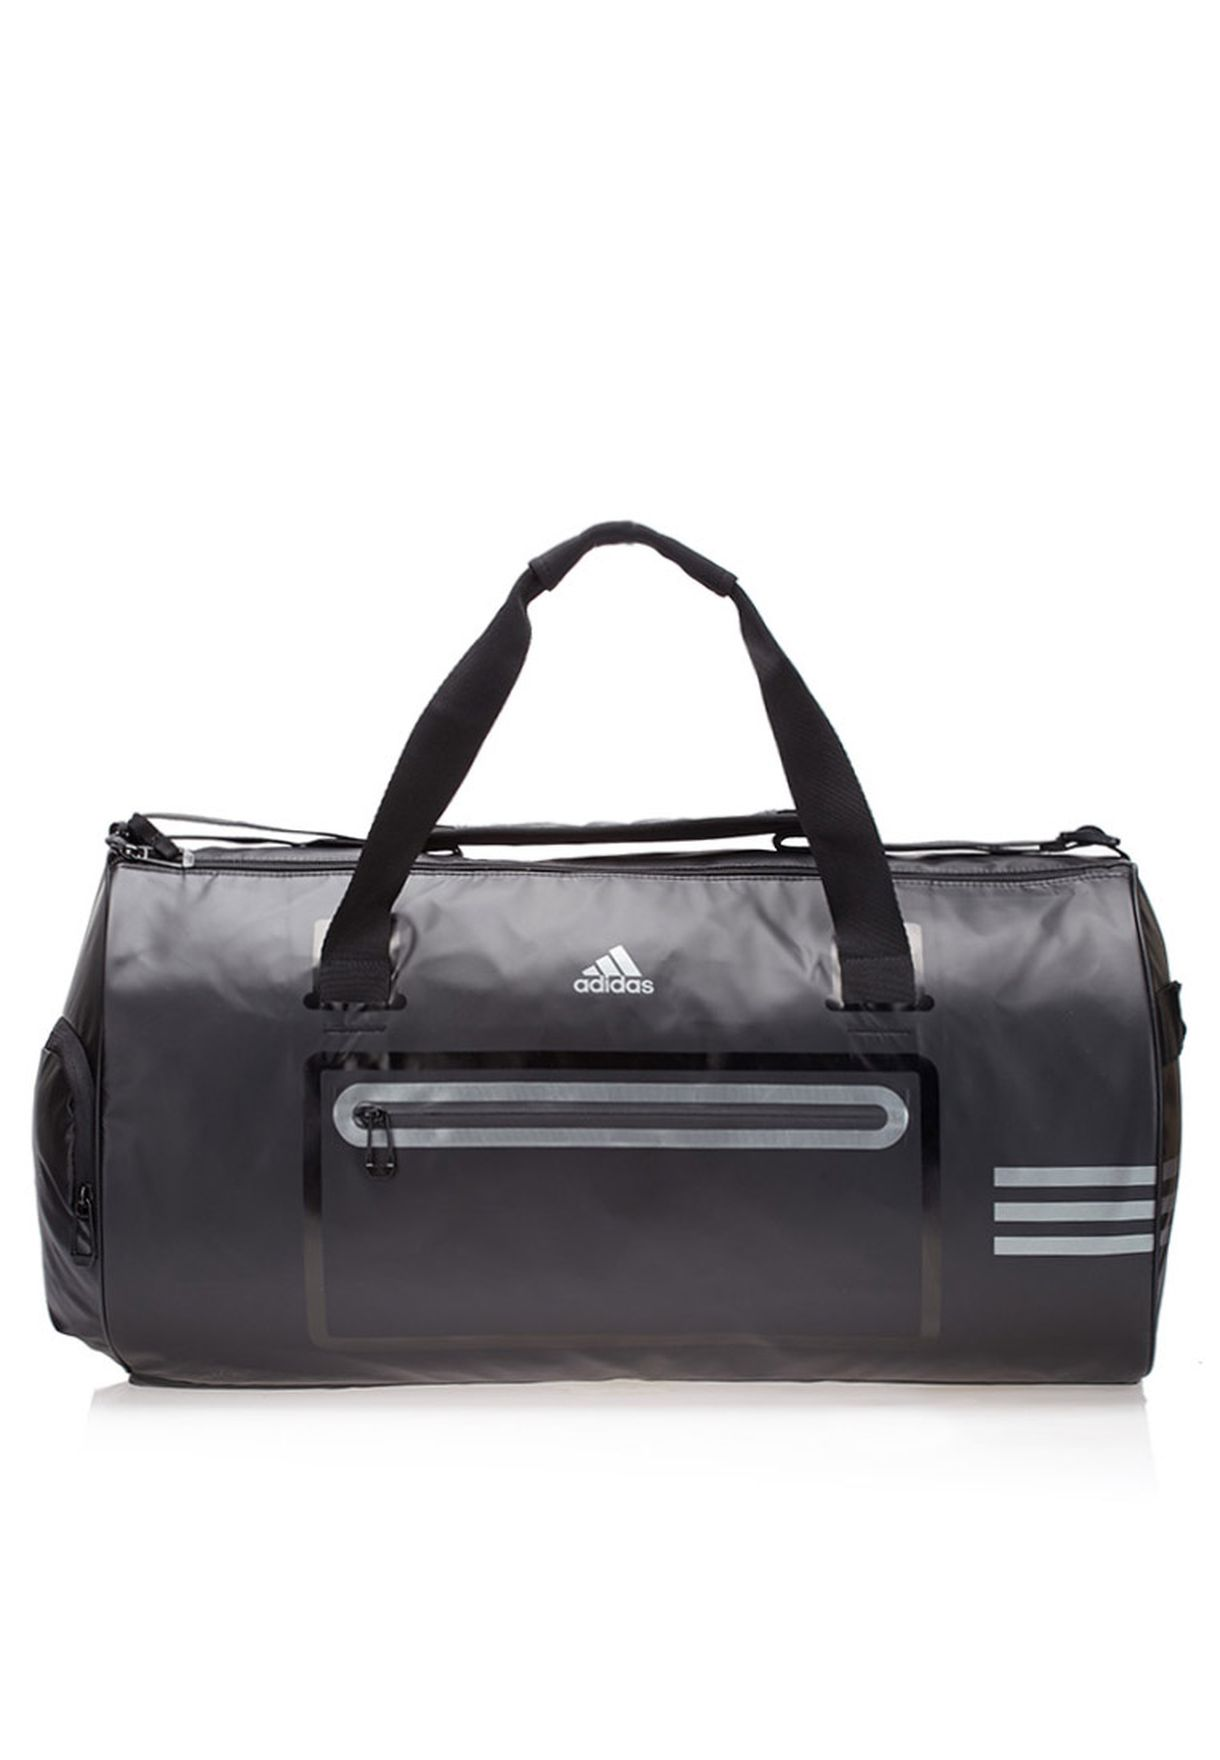 00c4b8e65fa6 Shop adidas black Medium Climacool Duffel Bag S18198 for Men in Saudi -  AD476AC48PIX